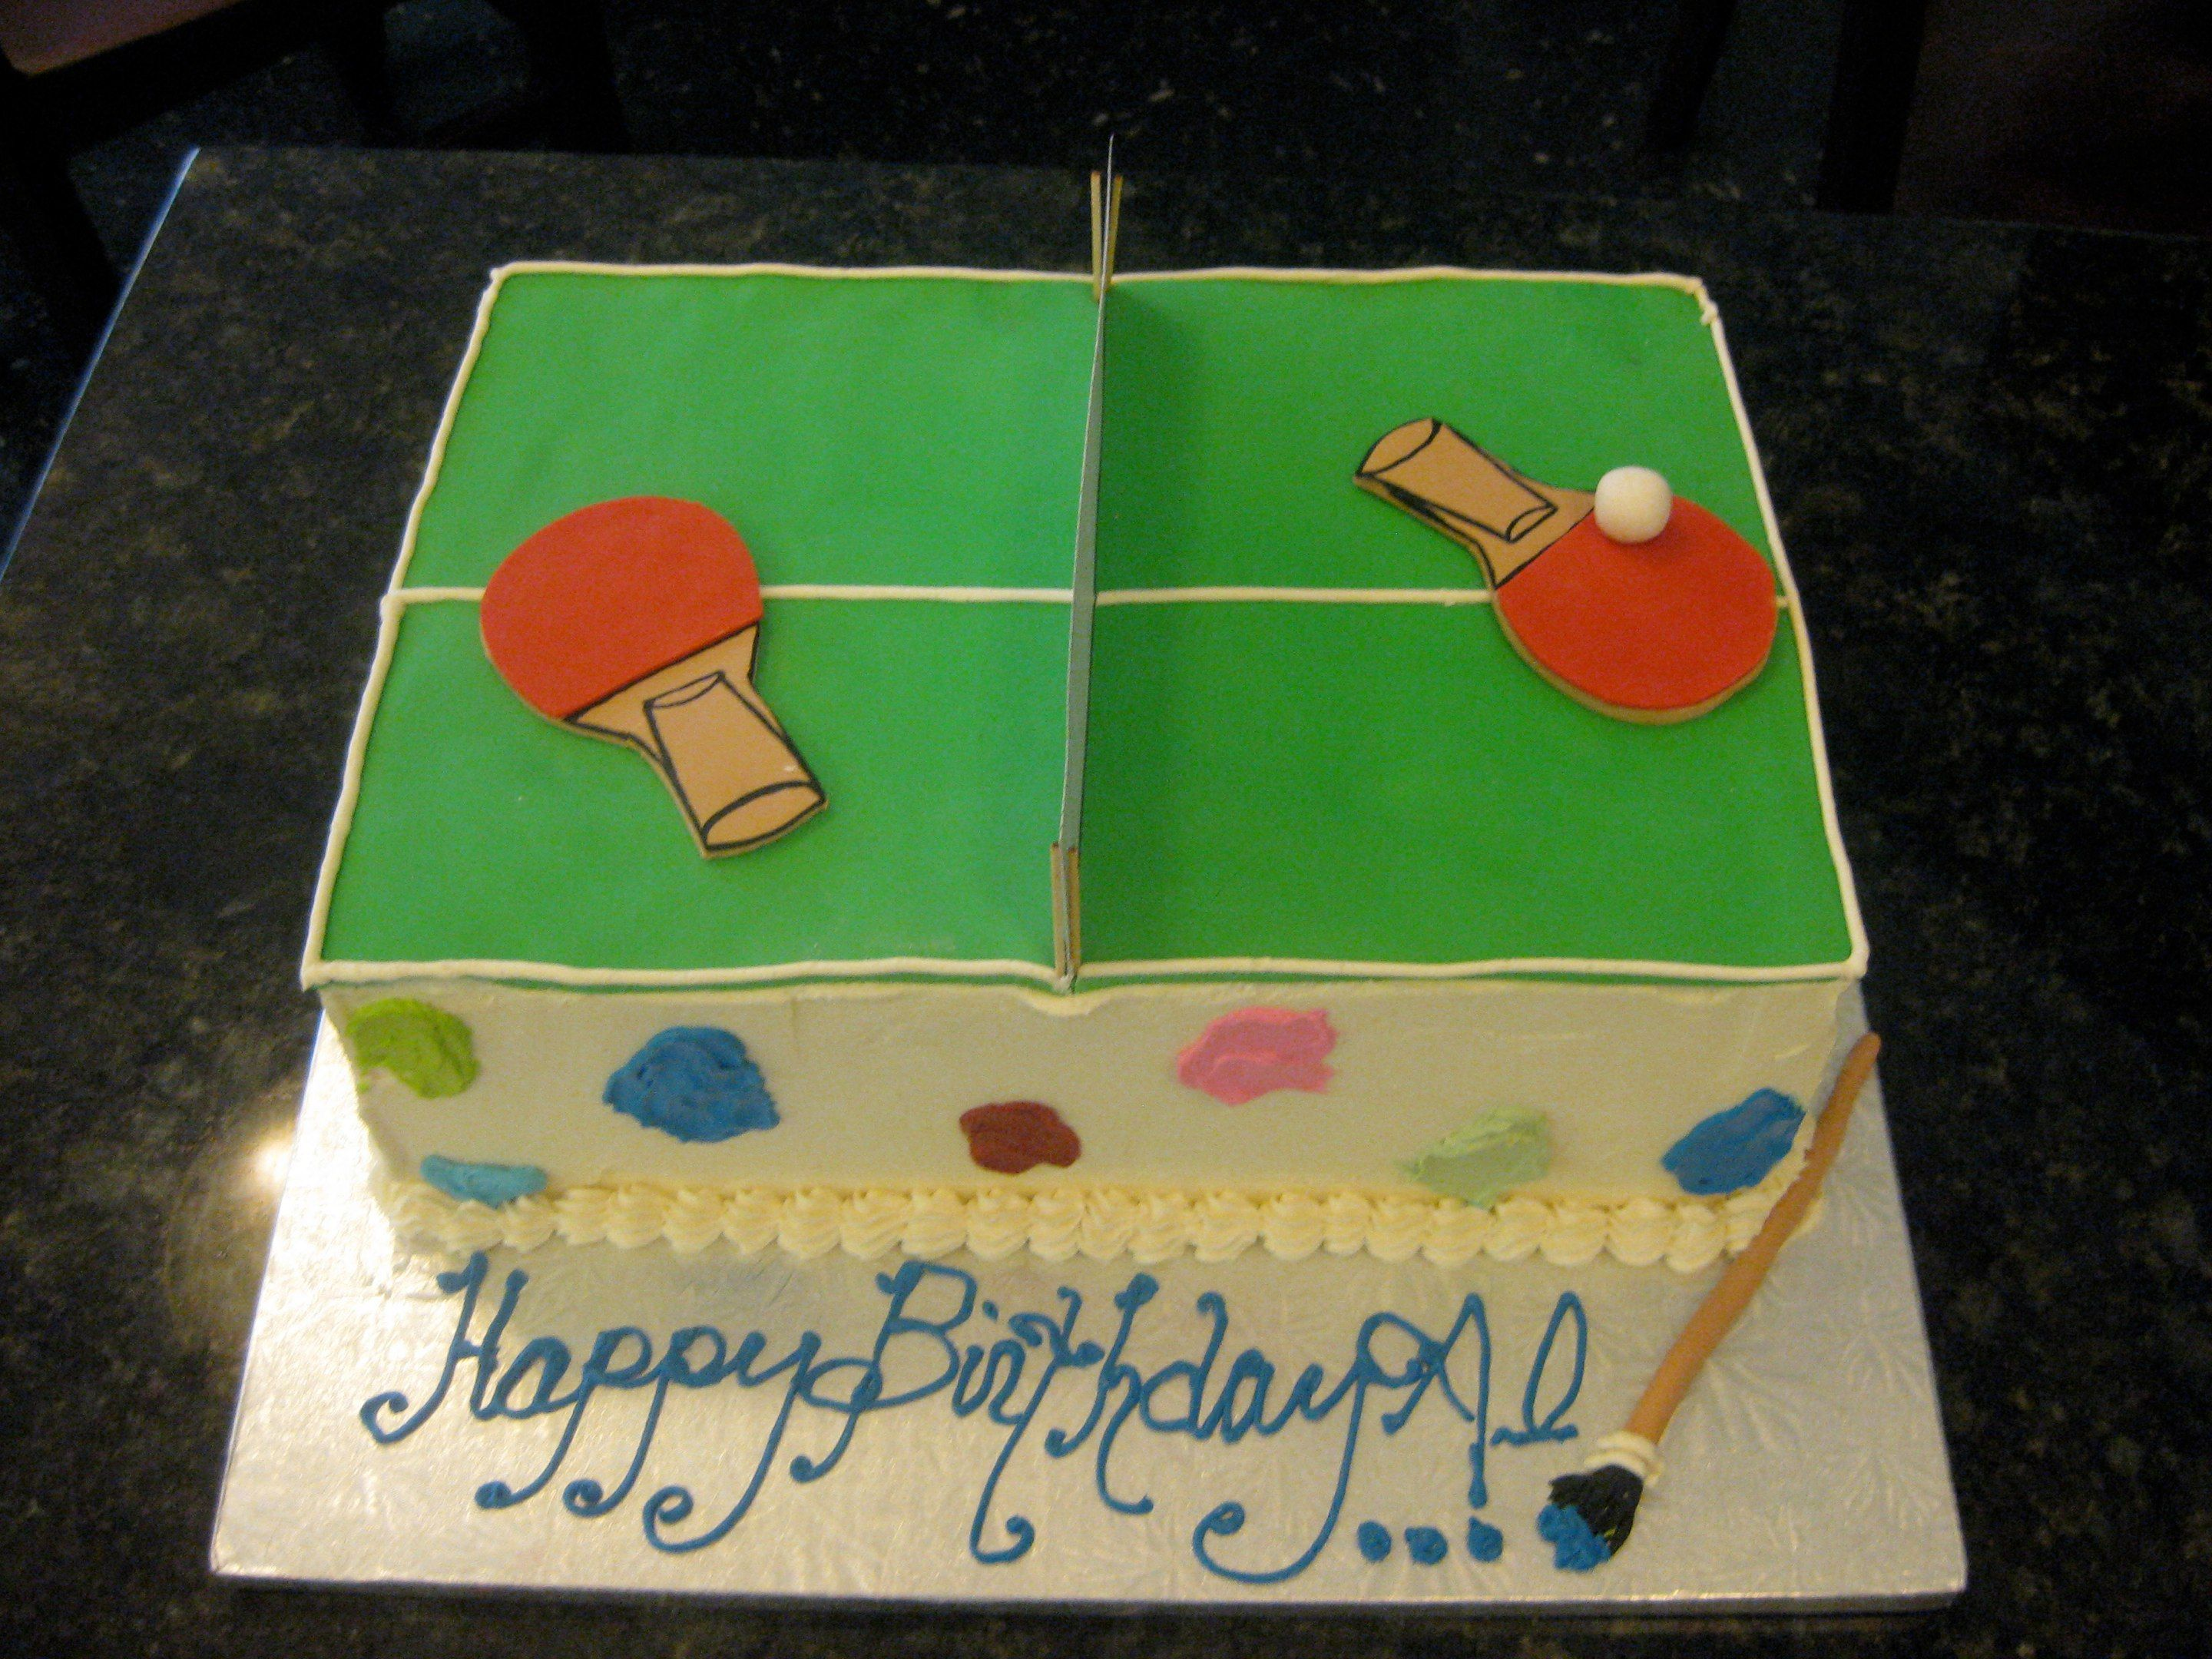 I Want to Play! Ping Pong Birthday Cake